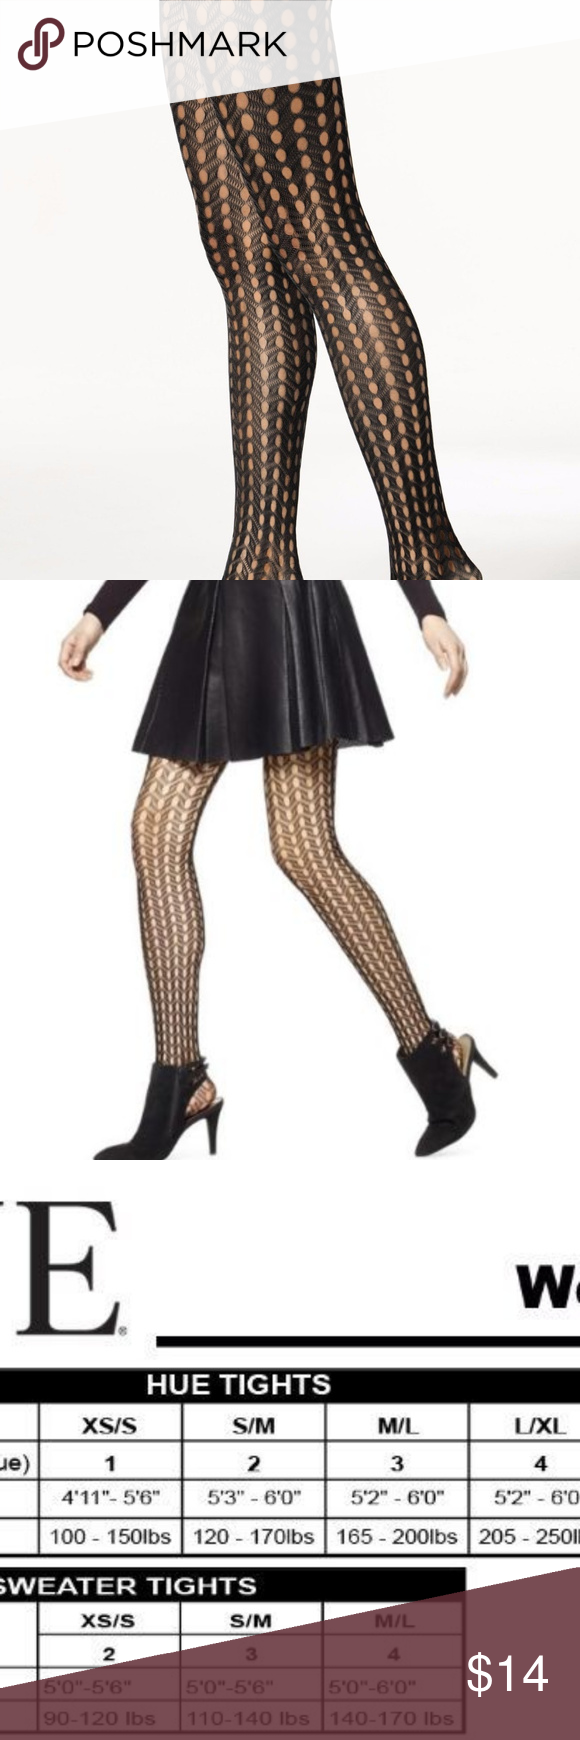 6a4c6b875a7 Hue Openwork Net Chevron Tights BLACK SZ S M Hue Openwork Net Chevron Tights  79001